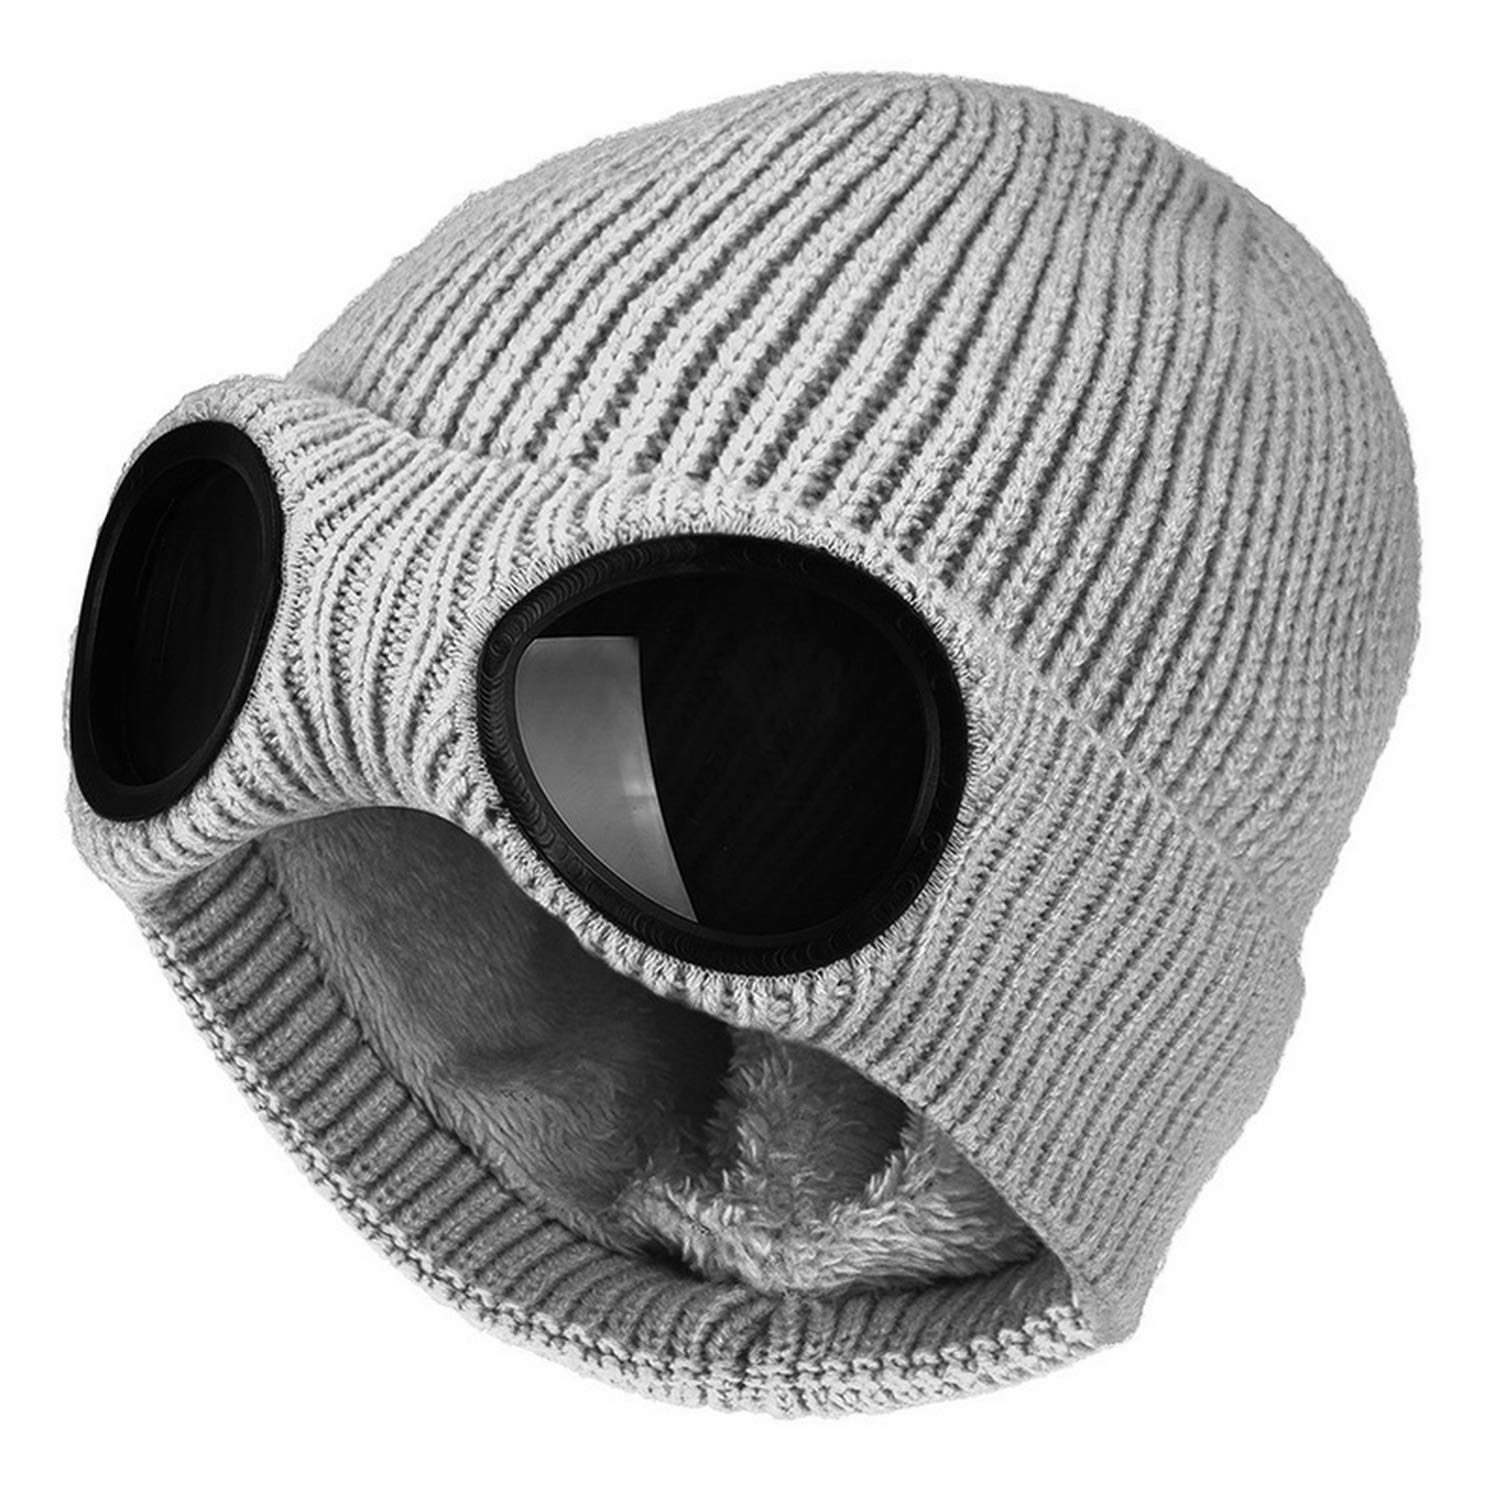 Chad Hope Fashion Ski Cap Removable Glasses for Men Women Double-use Thickened Warm Winter Knitted Hat